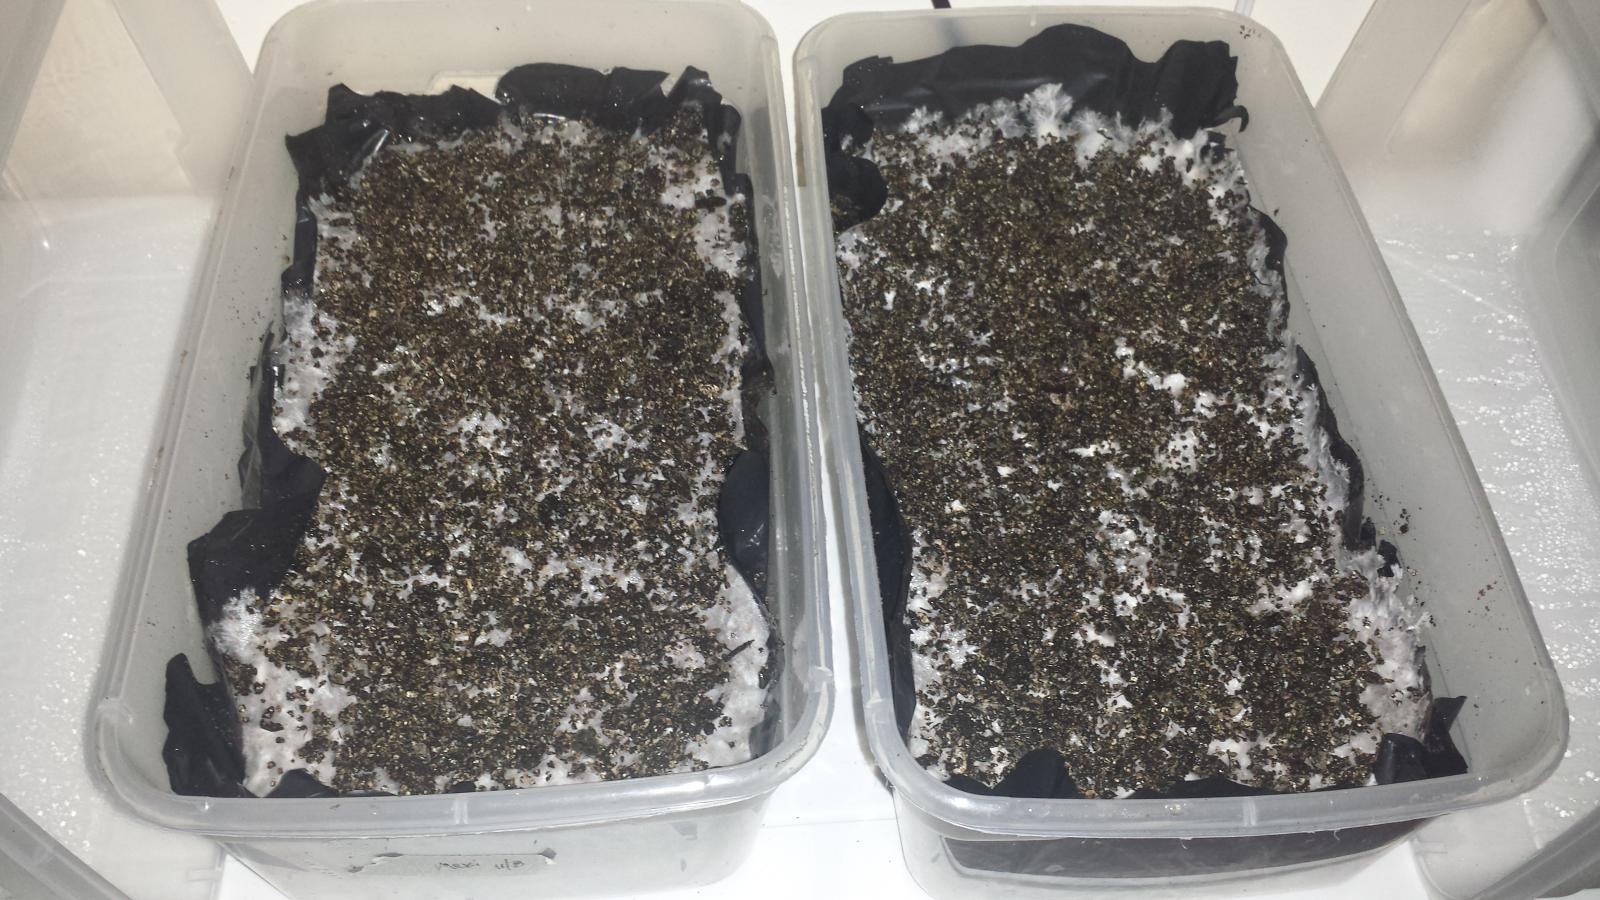 Coco Coir substrate with coffee supplement - A 4 part tek